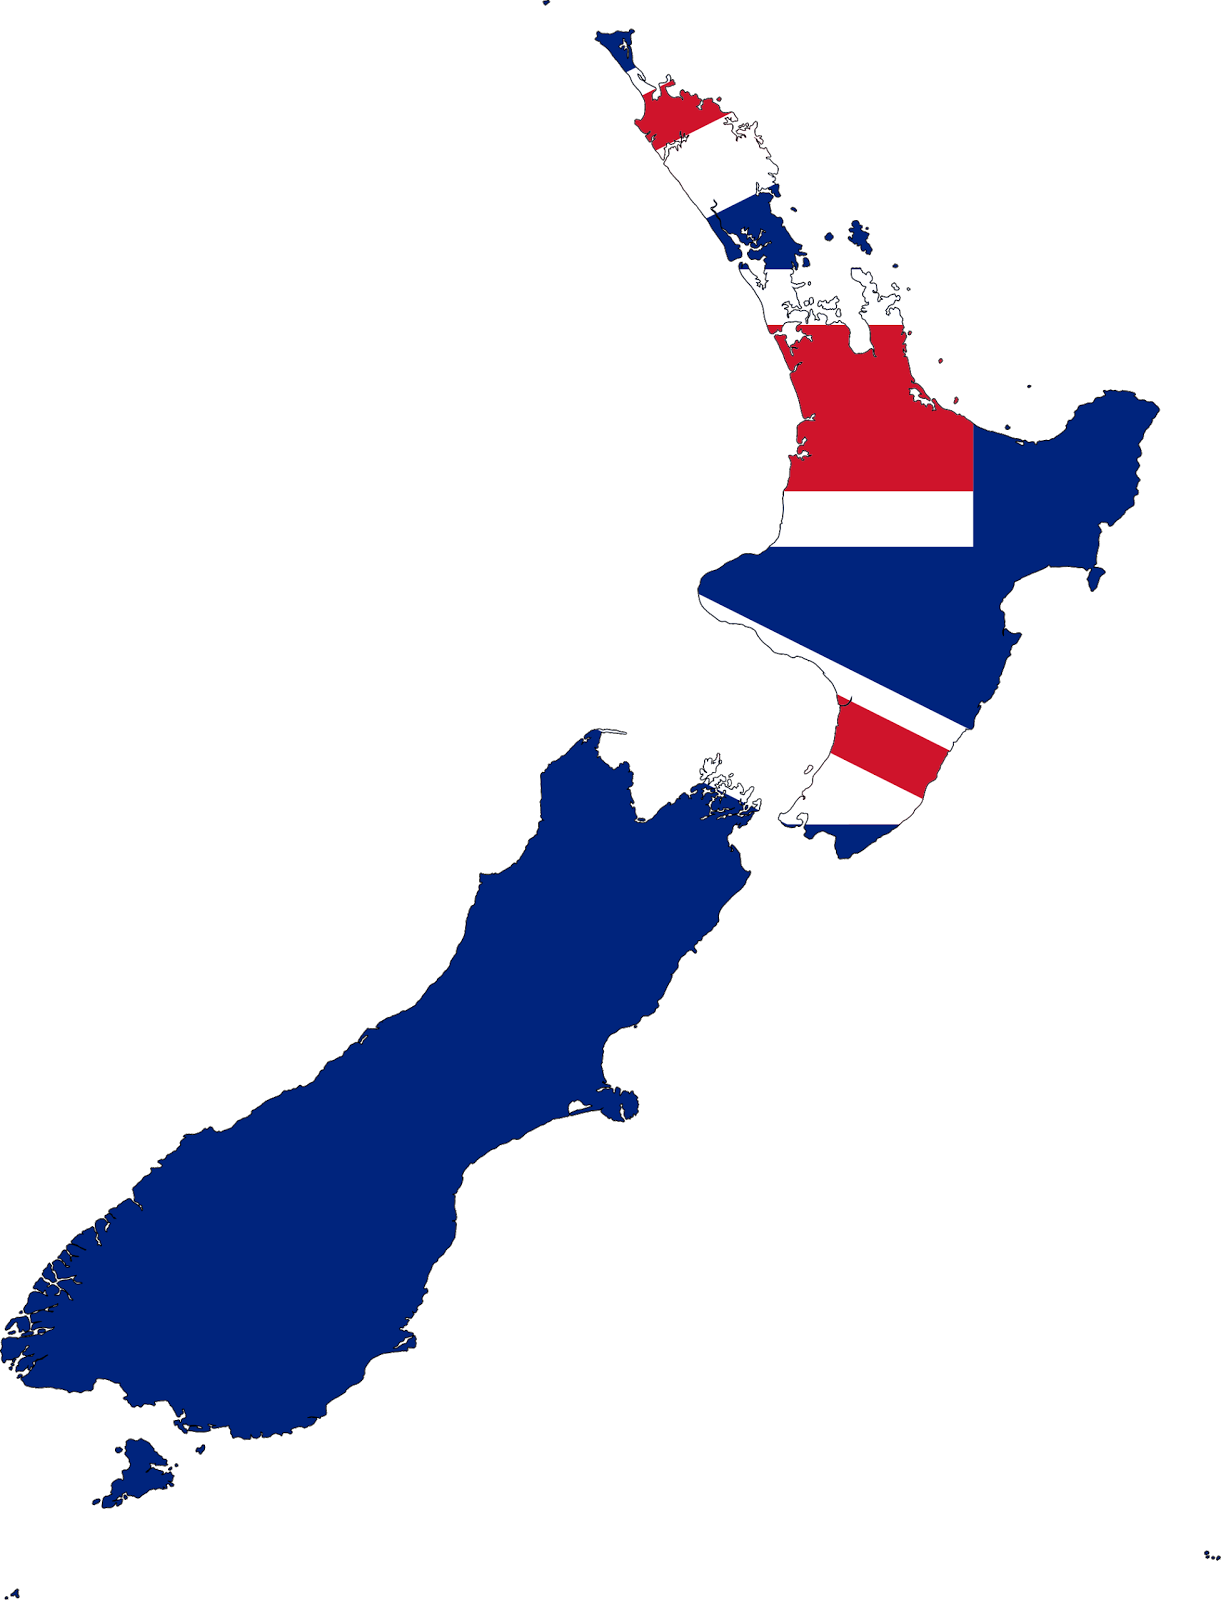 T Shirt Organizer Country Flag Meaning New Zealand Falag Pictures